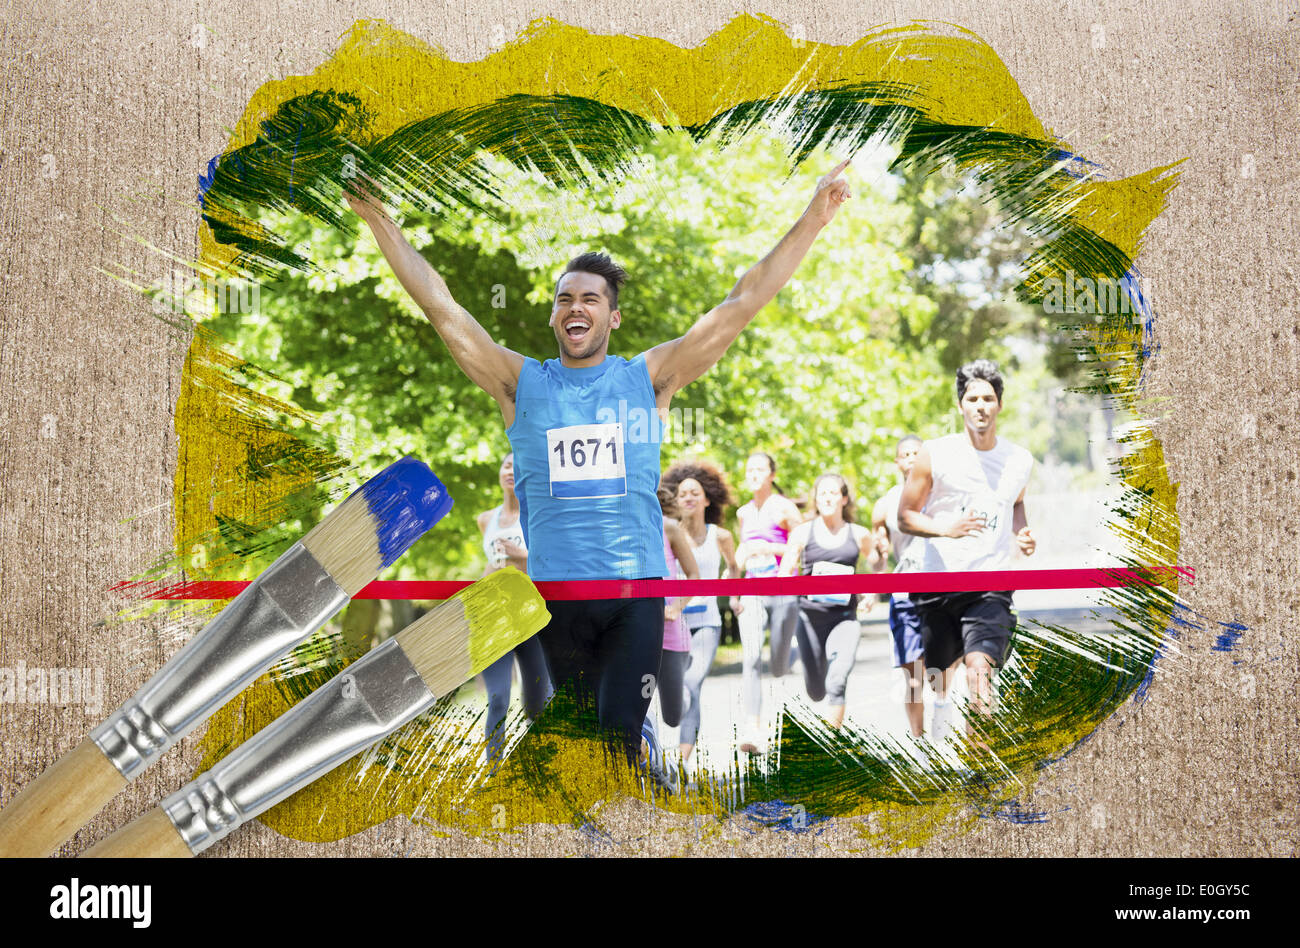 Composite image of racer crossing finishing line - Stock Image